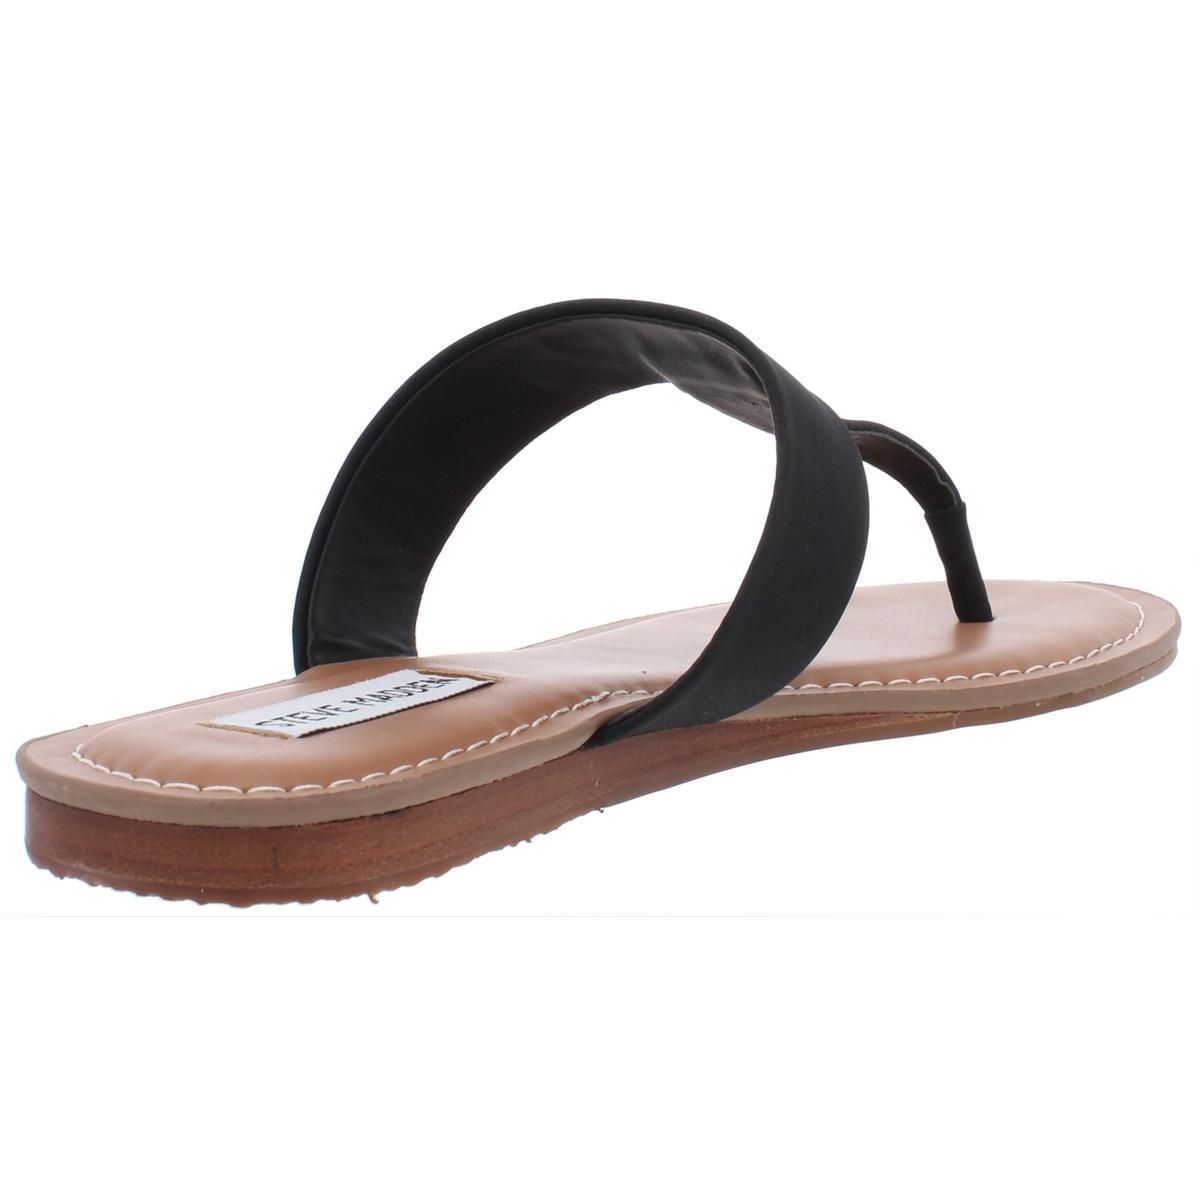 Steve-Madden-Femme-Vacay-Faux-Cuir-String-Sandales-Flats-Chaussures-BHFO-0099 miniature 4